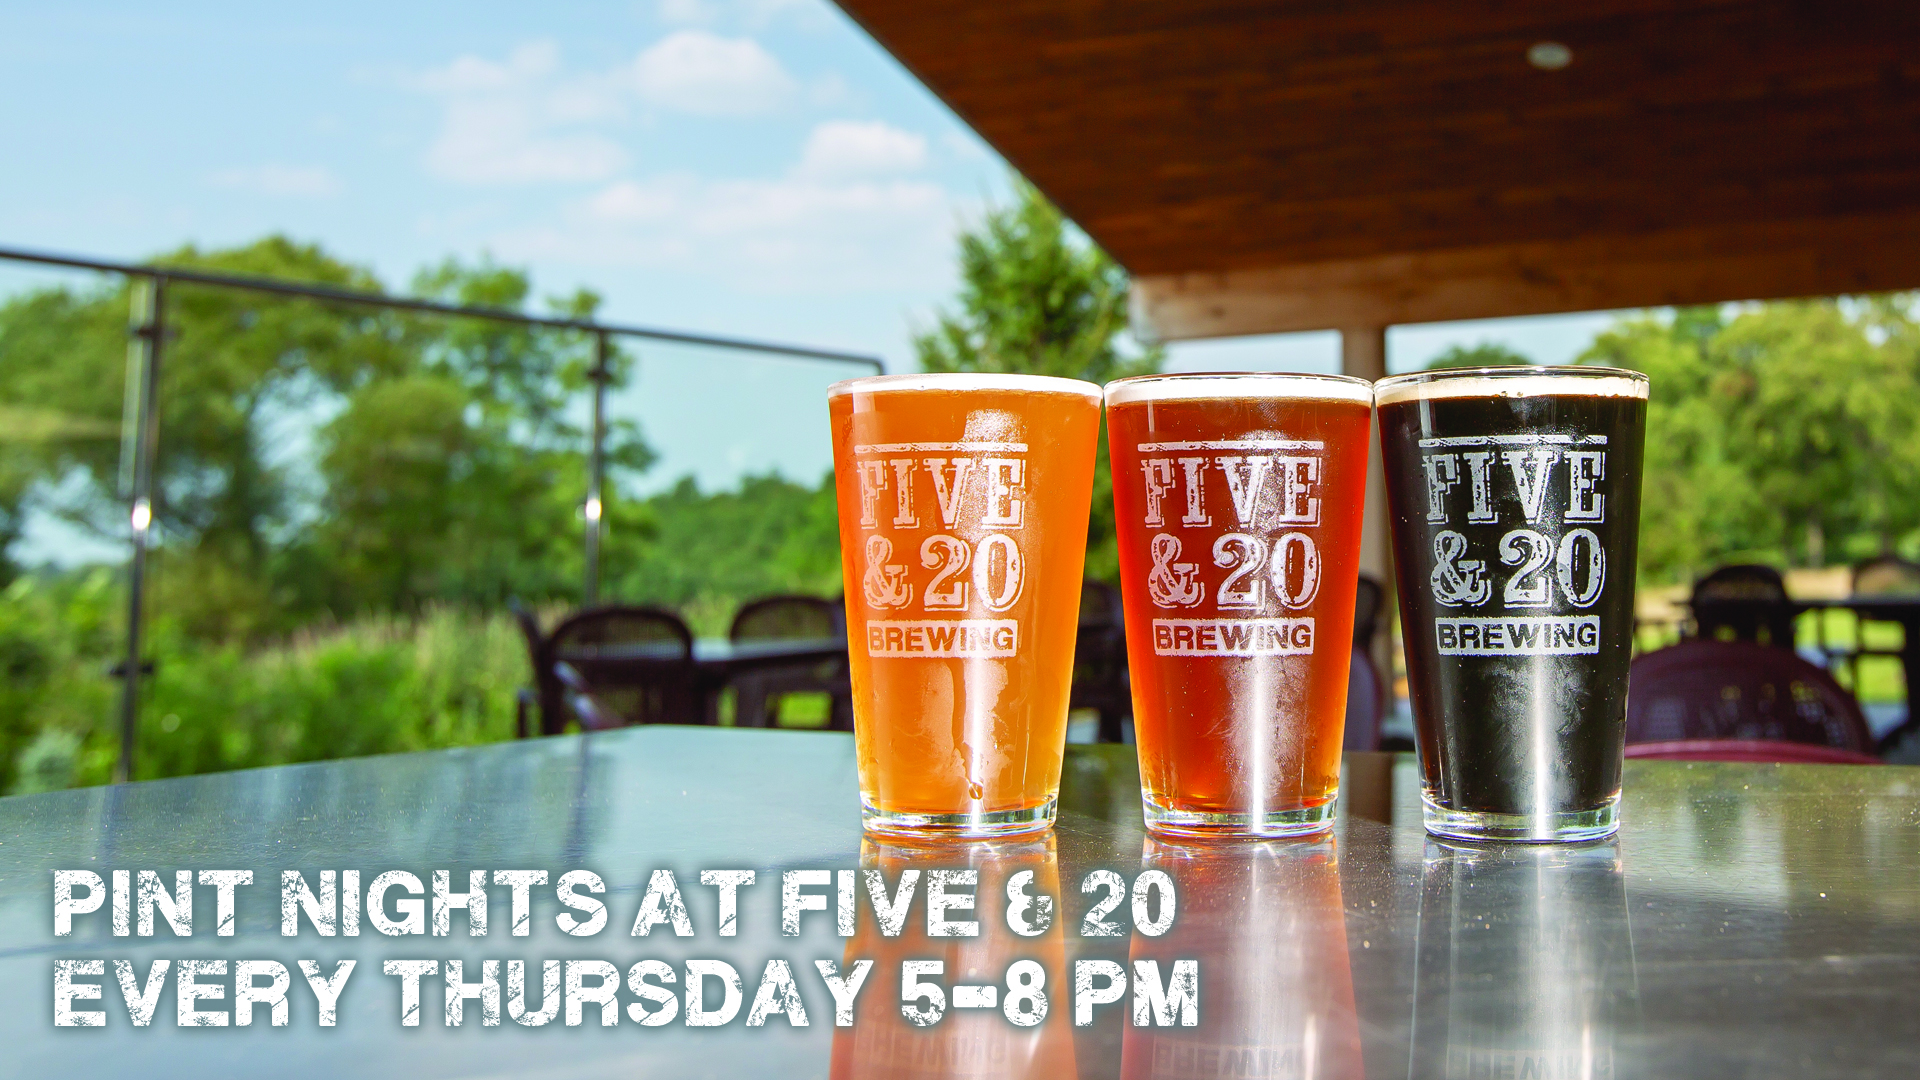 Pint Night at Five & 20